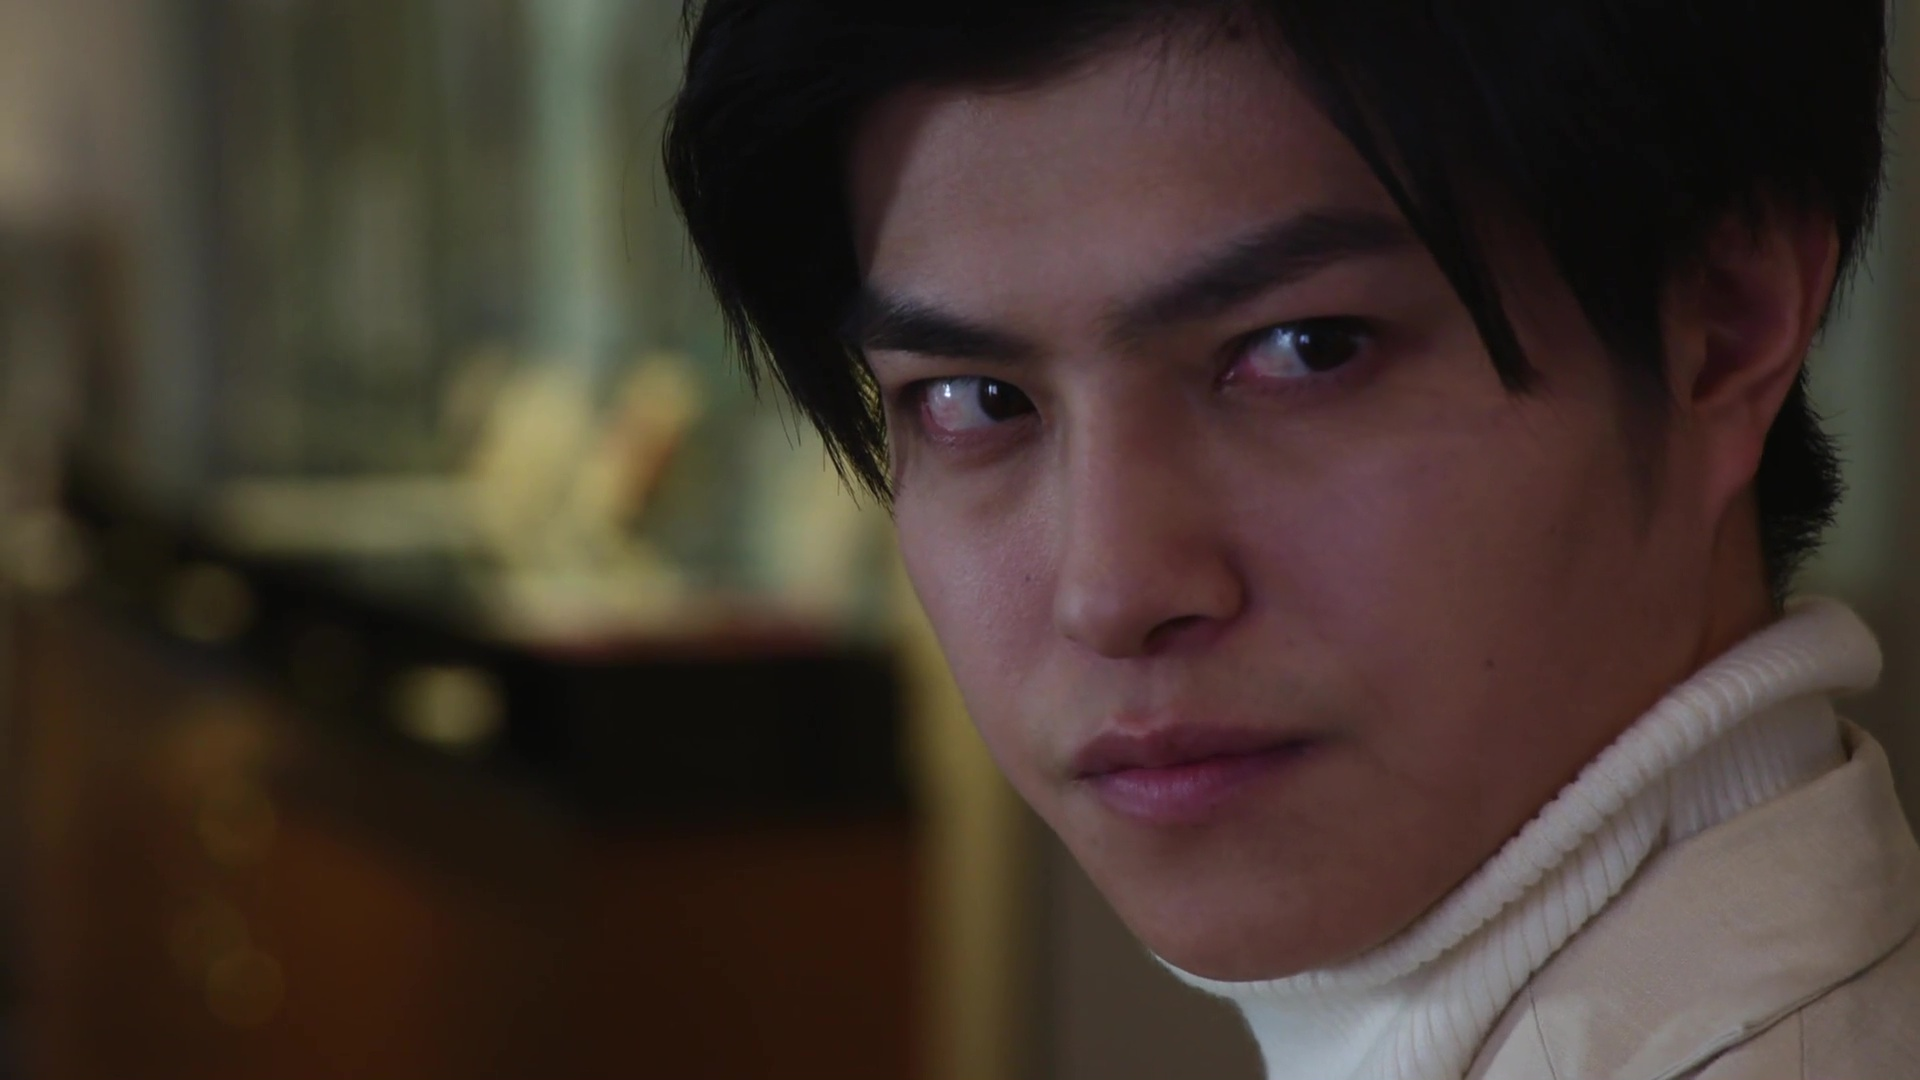 Kamen Rider Zero One Episode 27 Recap